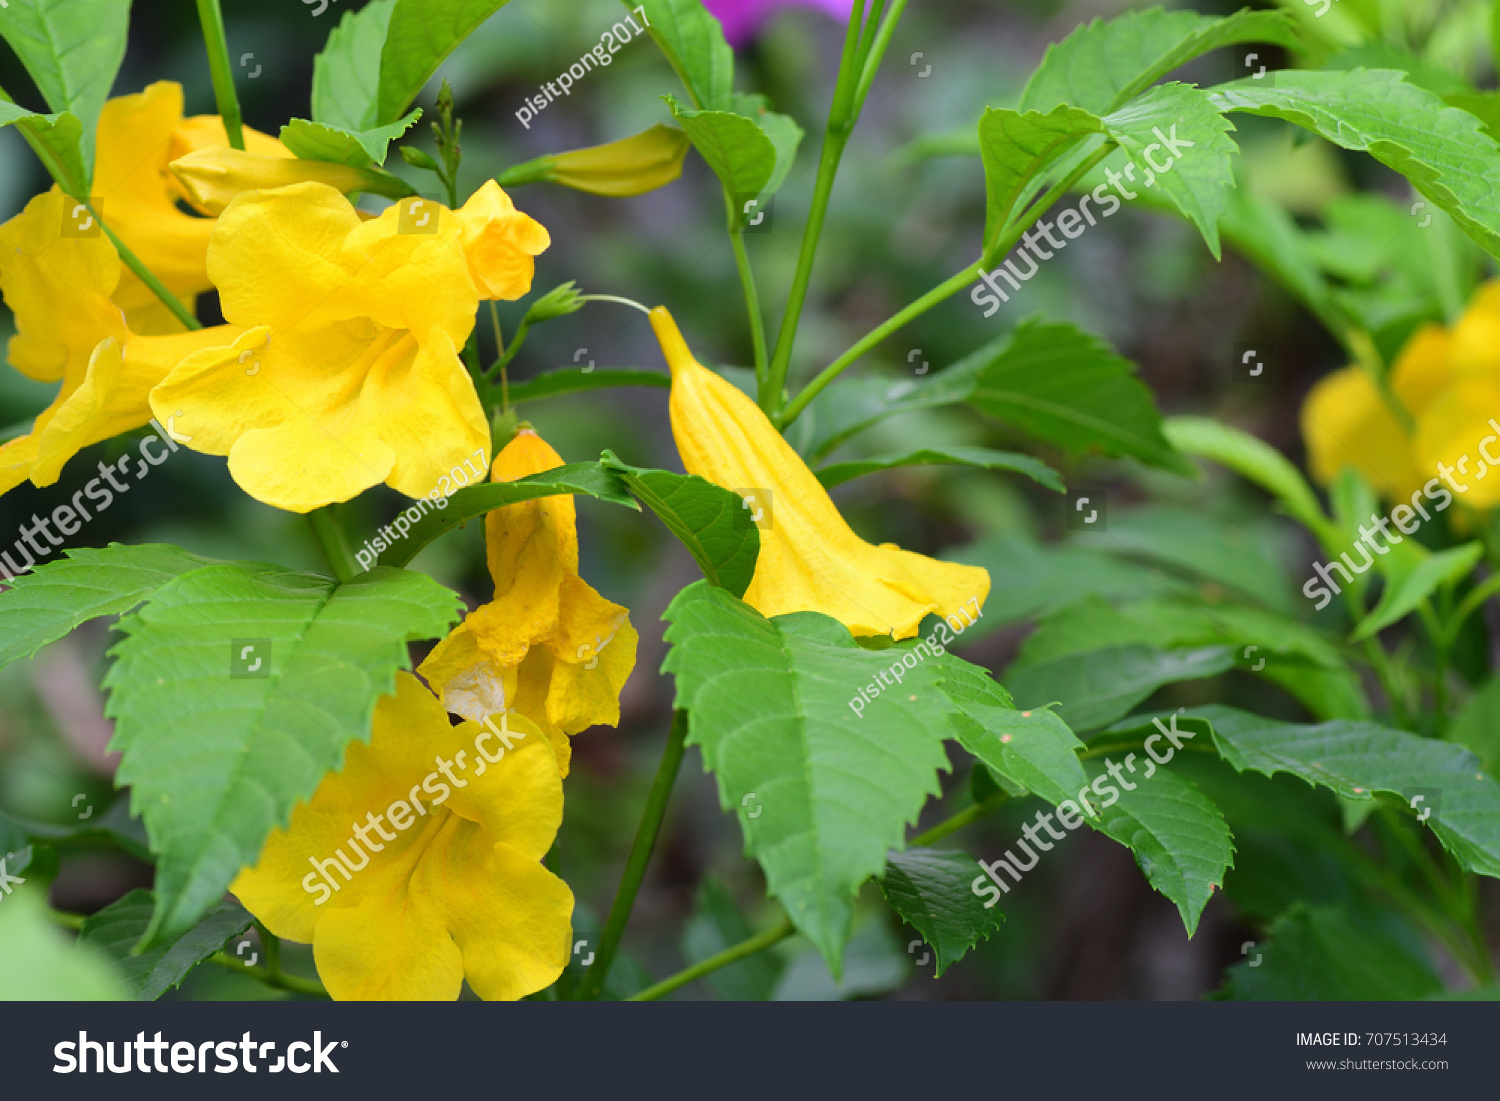 Tecoma Stans Yellow Bell Yellow Elder Trumpetbush Trumpetflower